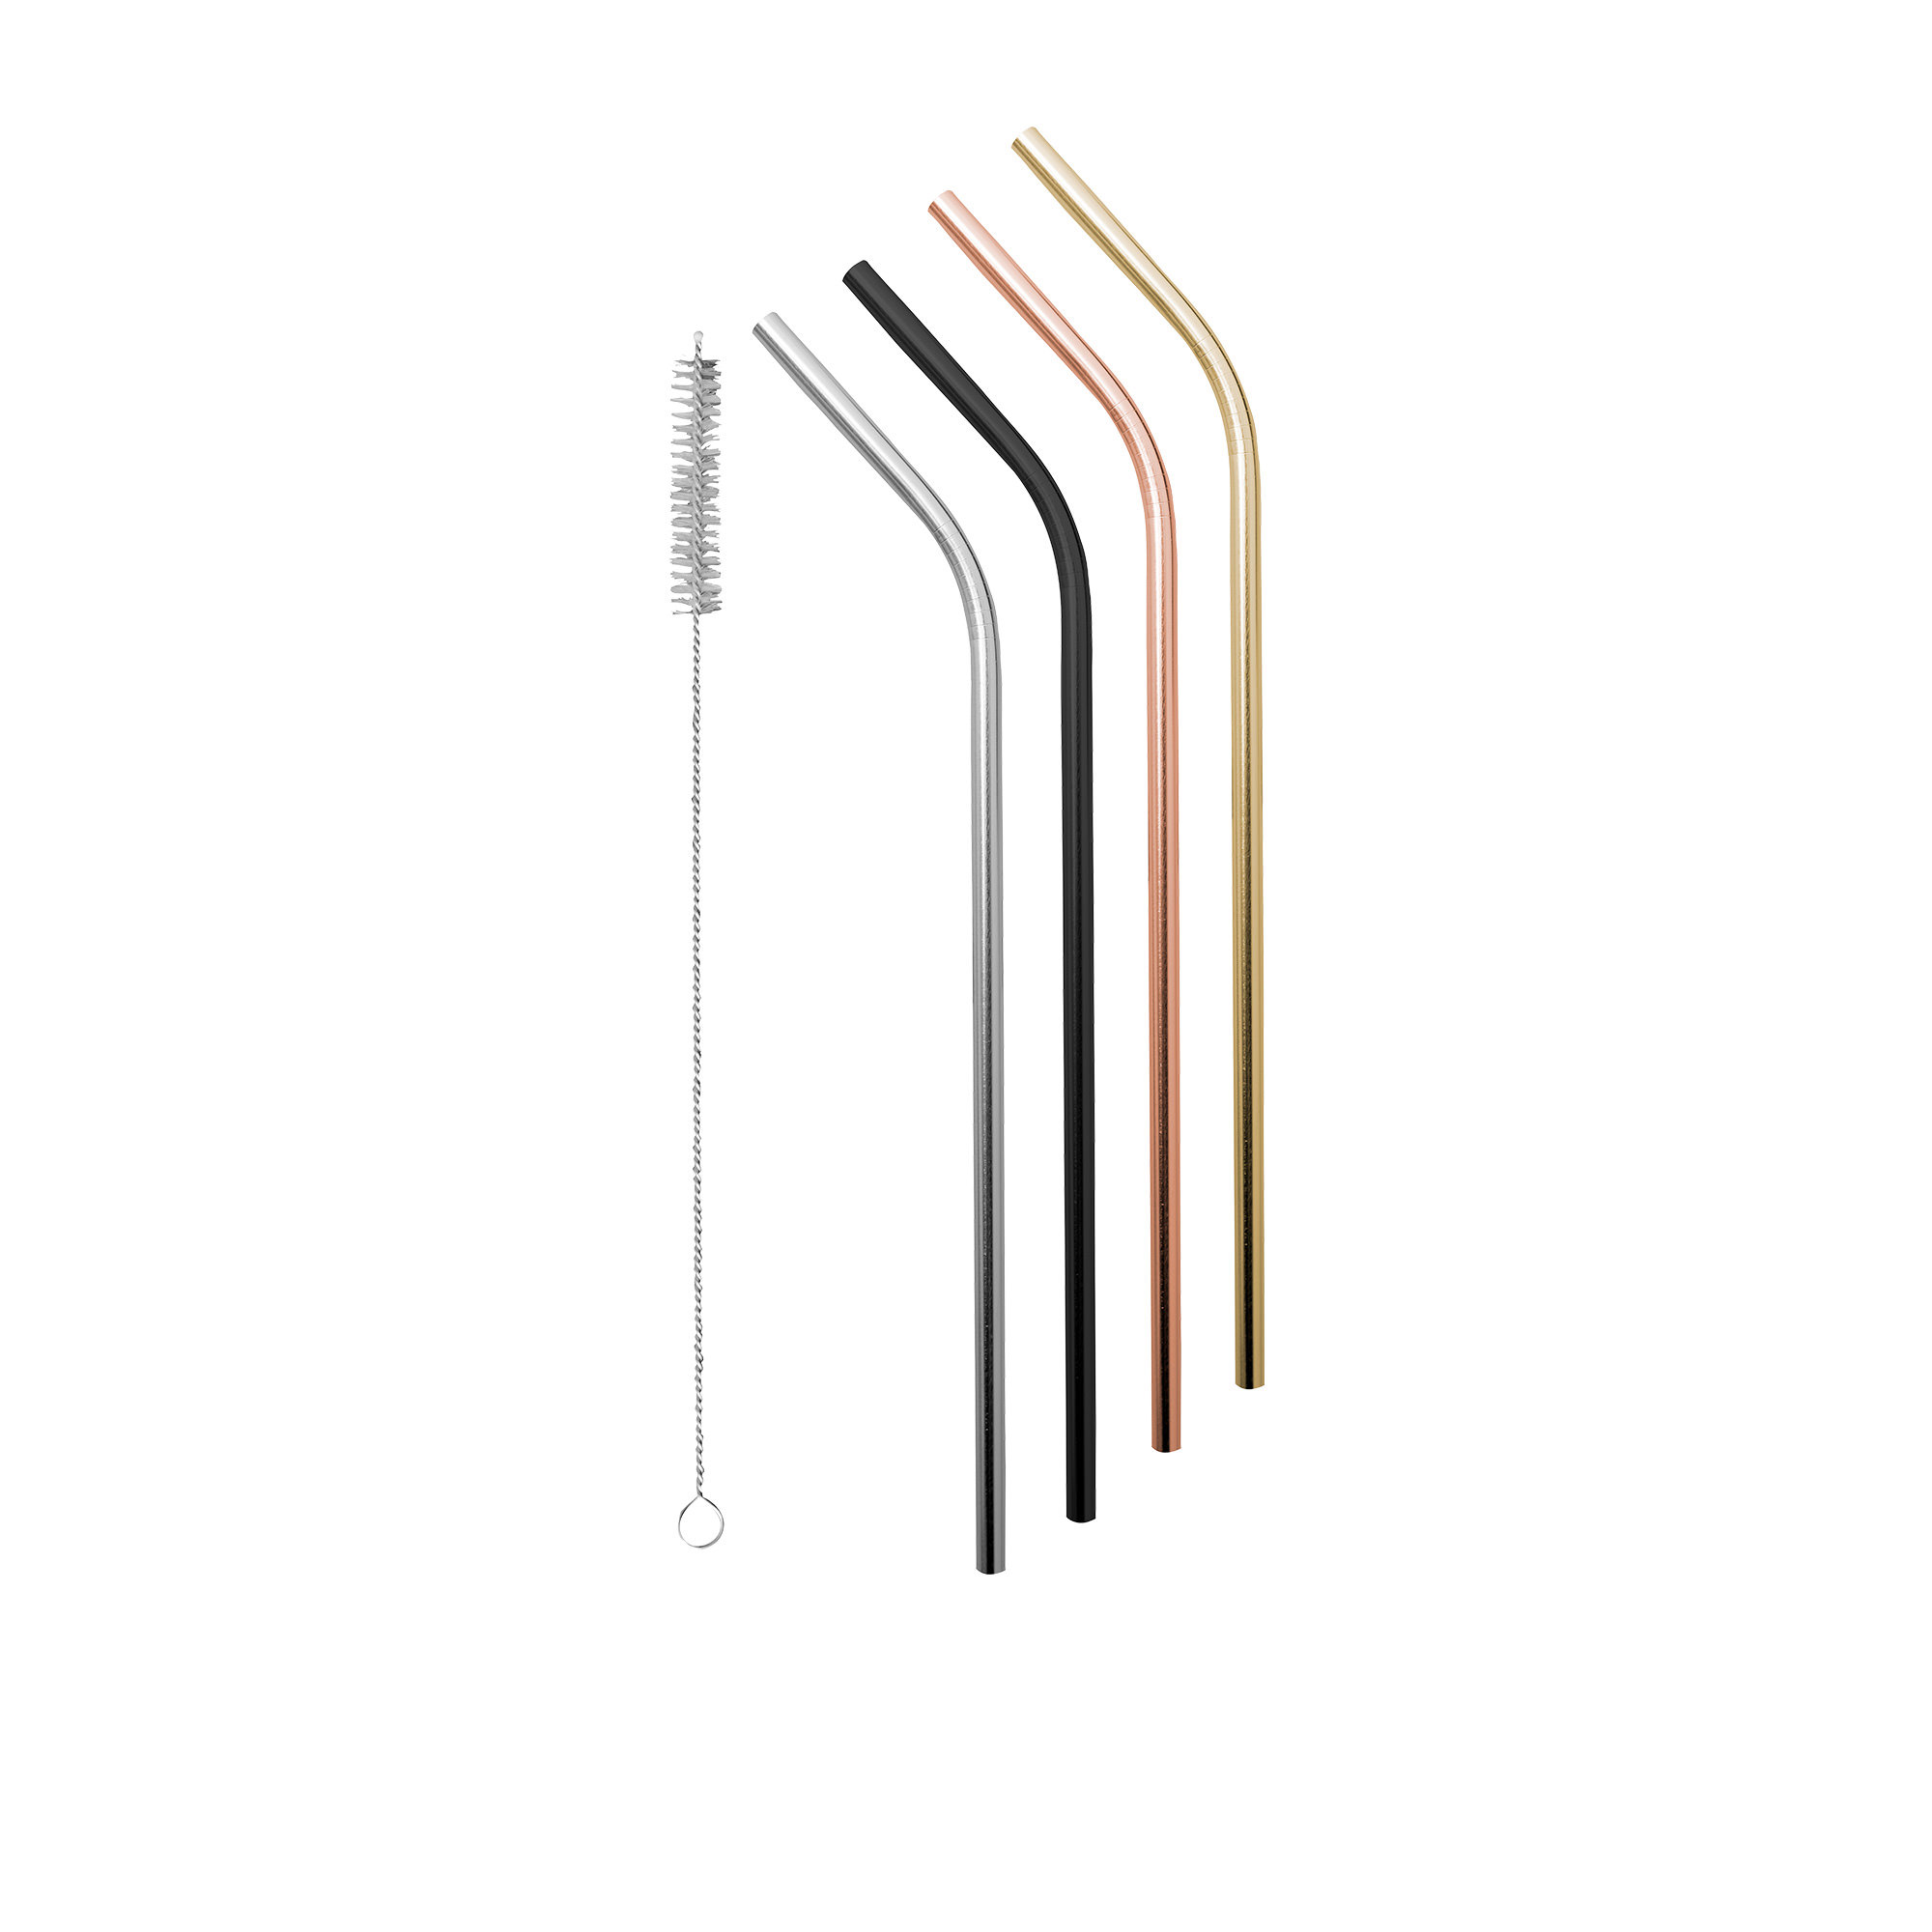 Avanti Stainless Steel Straw w/ Cleaning Brush Set of 4 Precious Metals